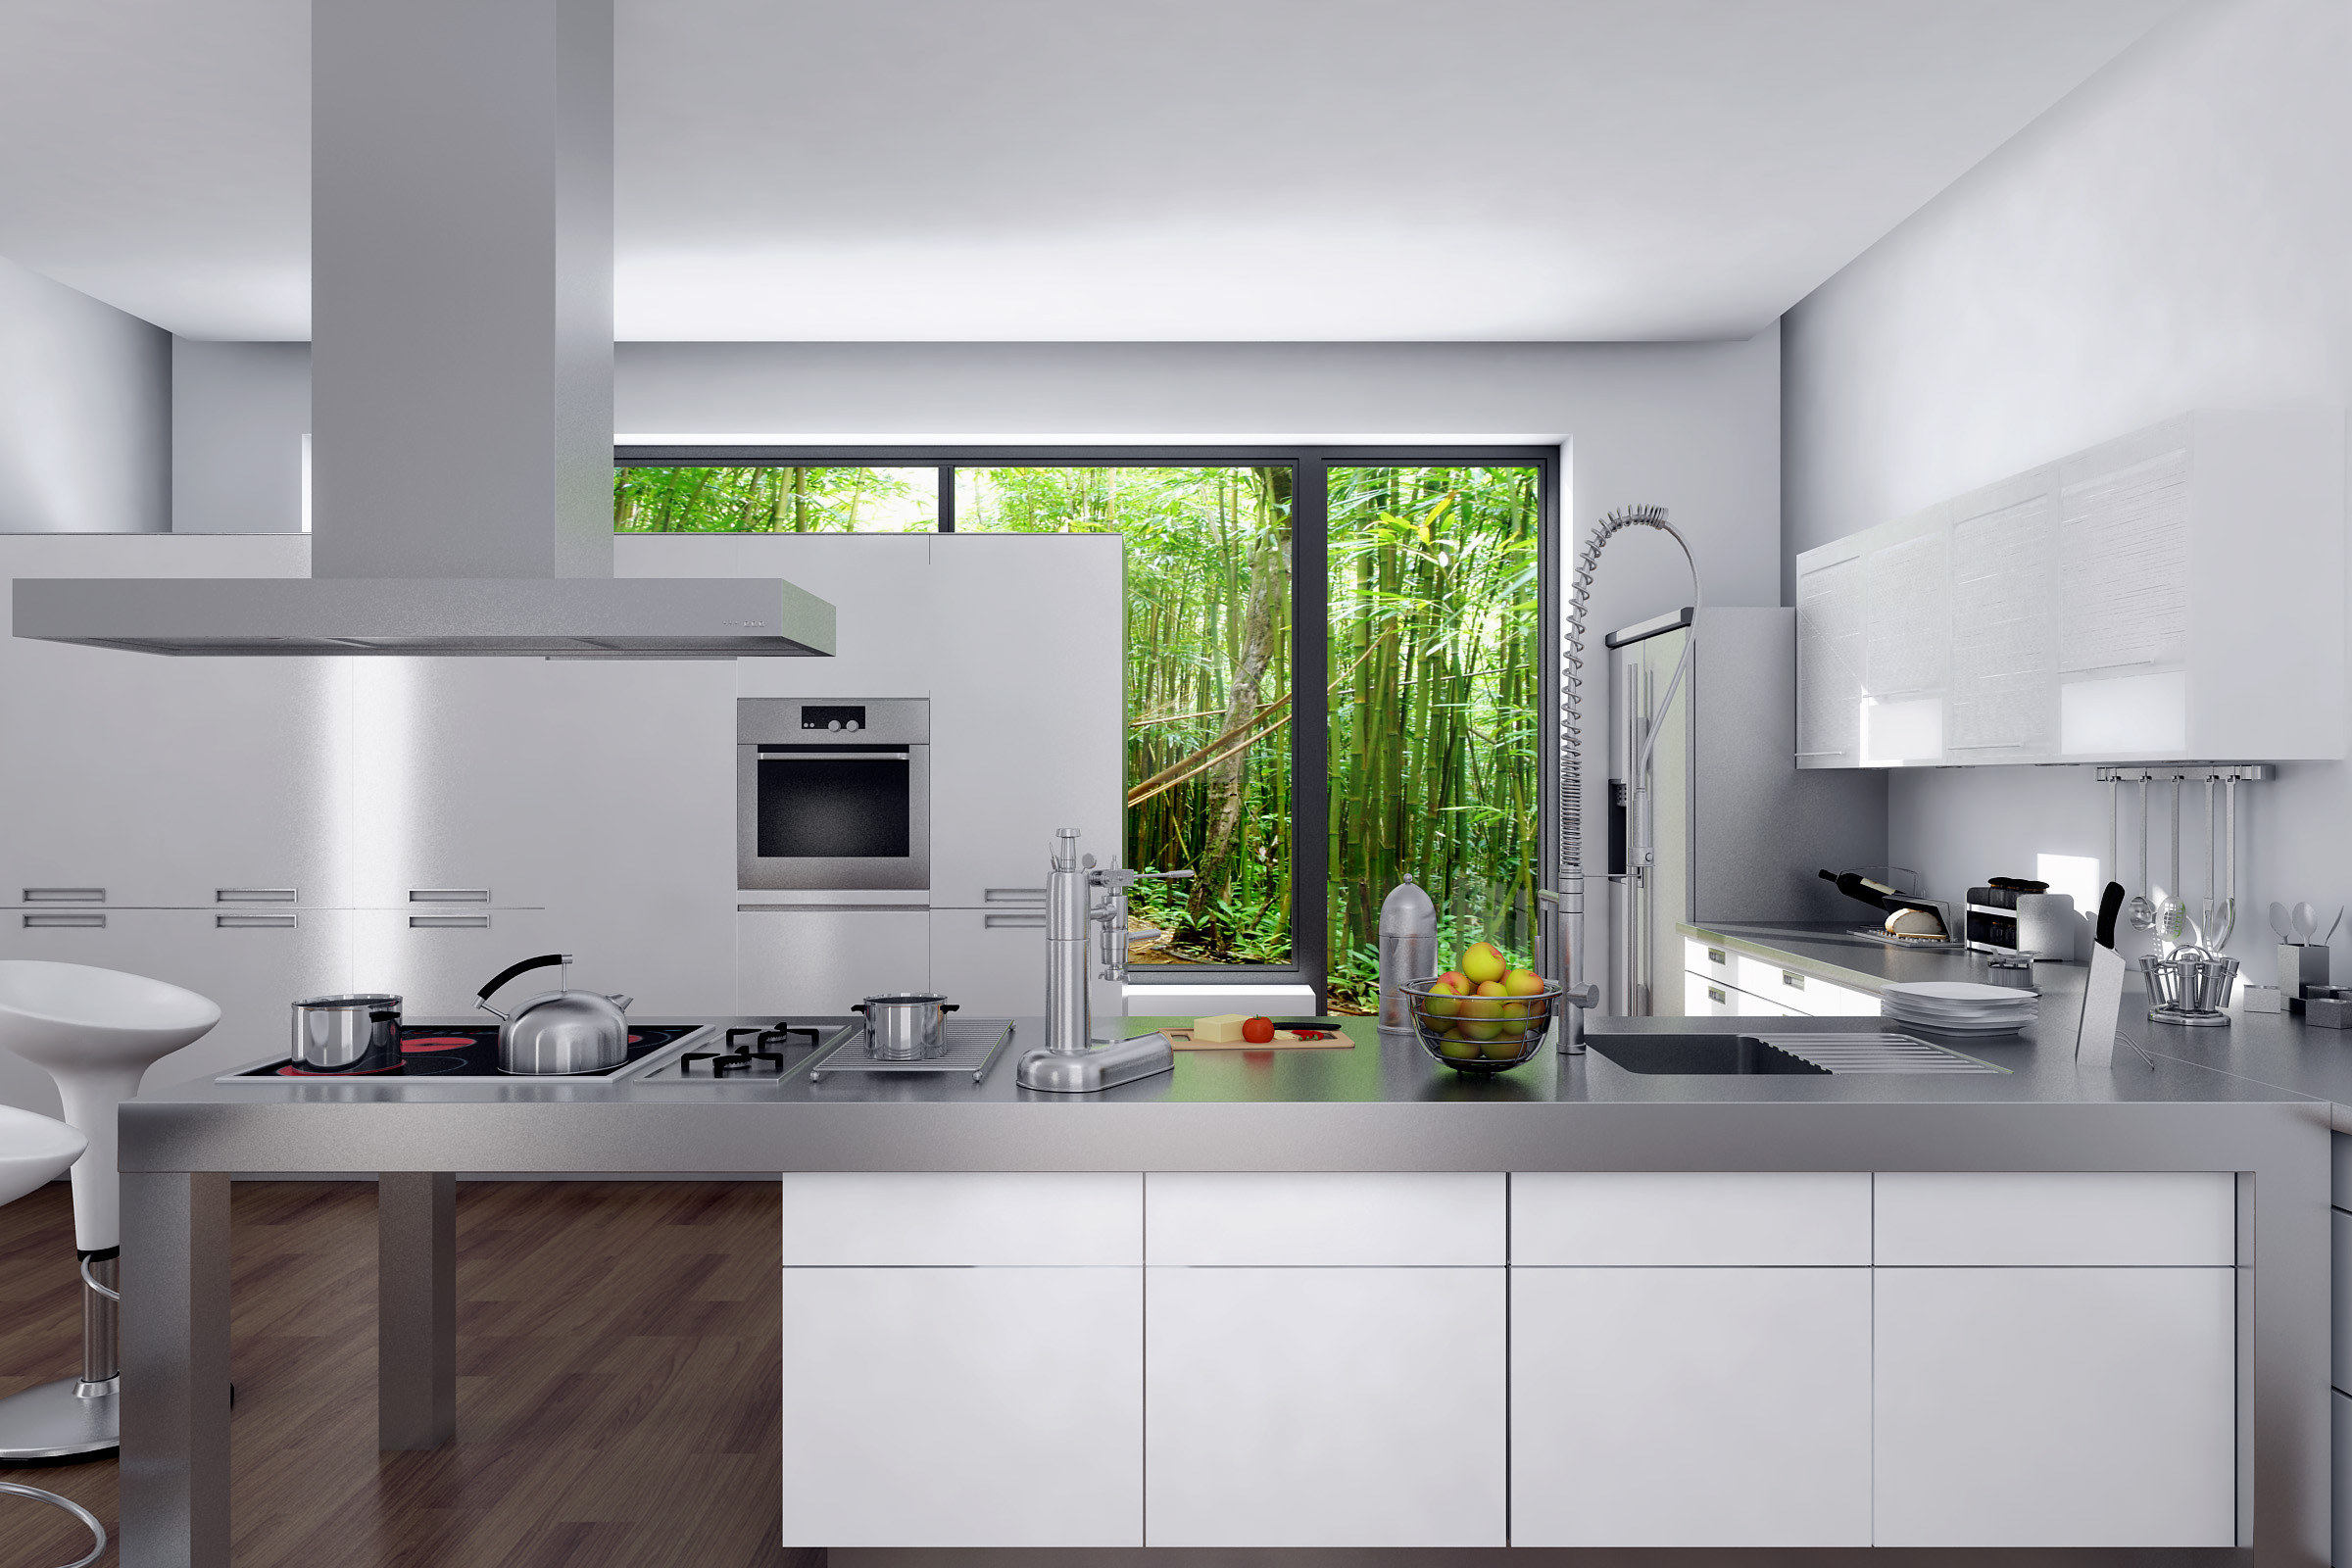 3d architectural kitchen by davidg1230 on deviantart for Architectural design kitchens